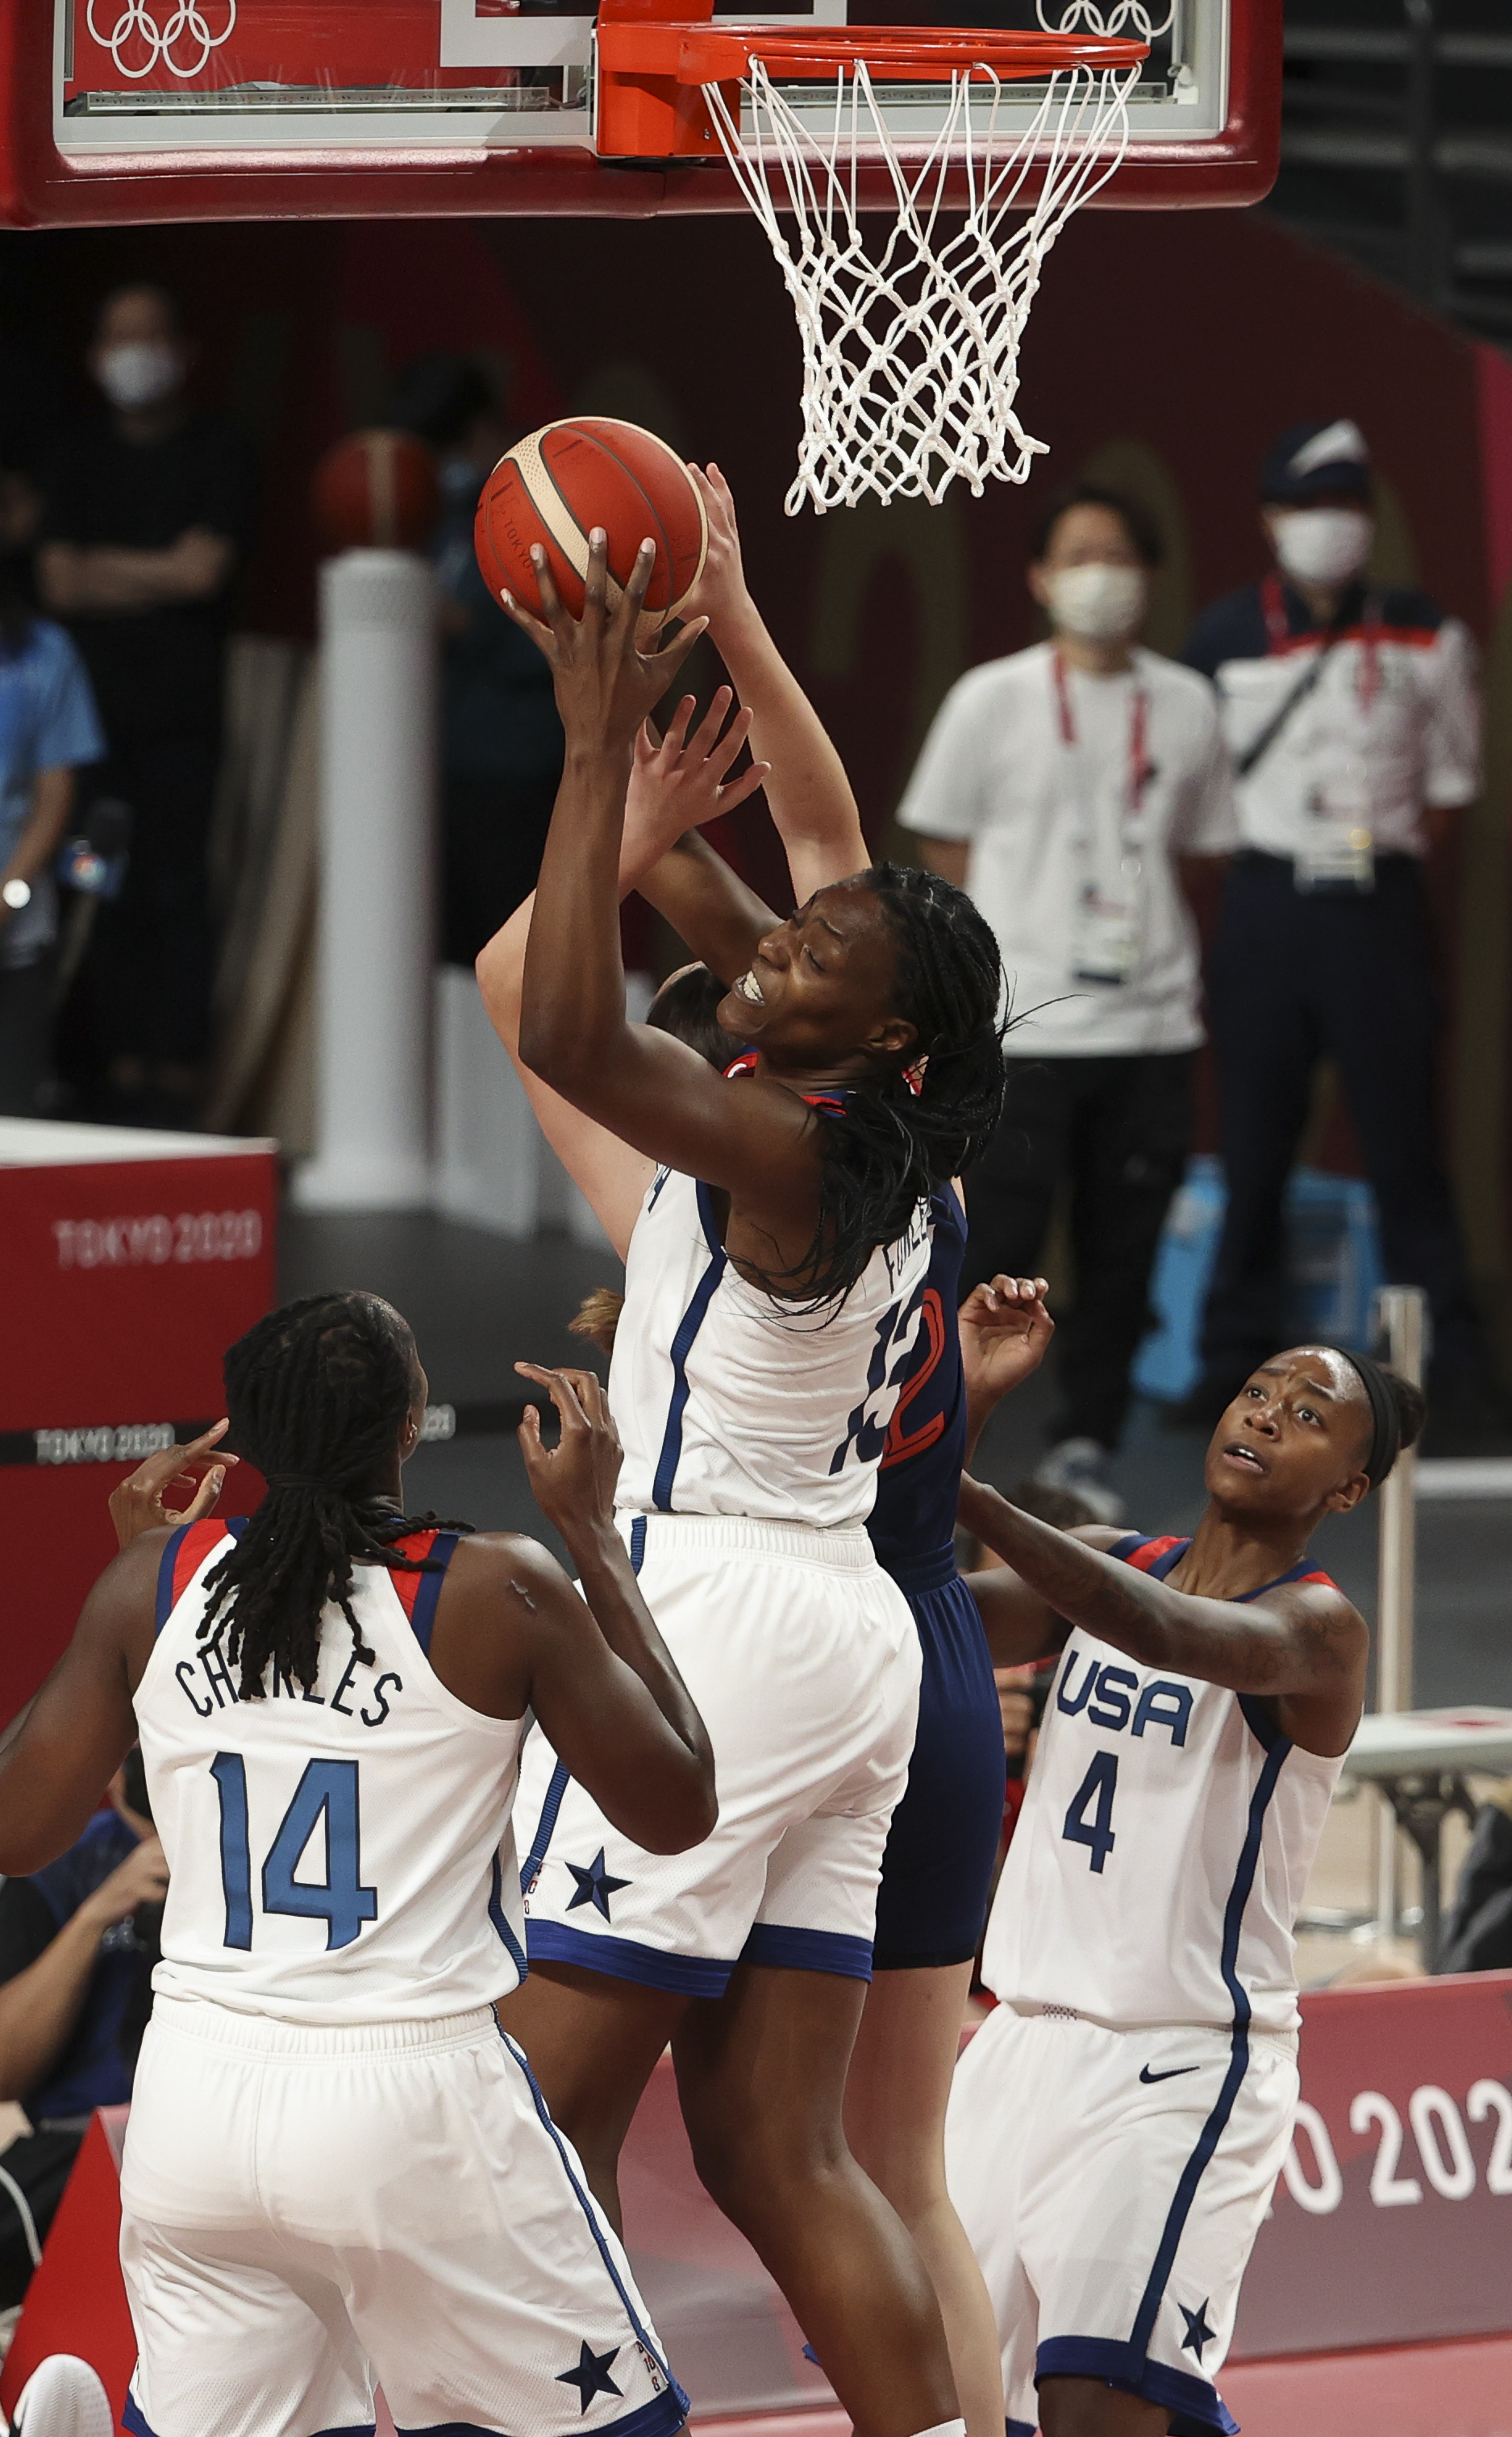 Sylvia Fowles of USA during the Women's Semifinal Basketball game between United States and Serbia on day fourteen of the Tokyo 2020 Olympic Games at Saitama Super Arena on August 6, 2021 in Saitama, Japan.